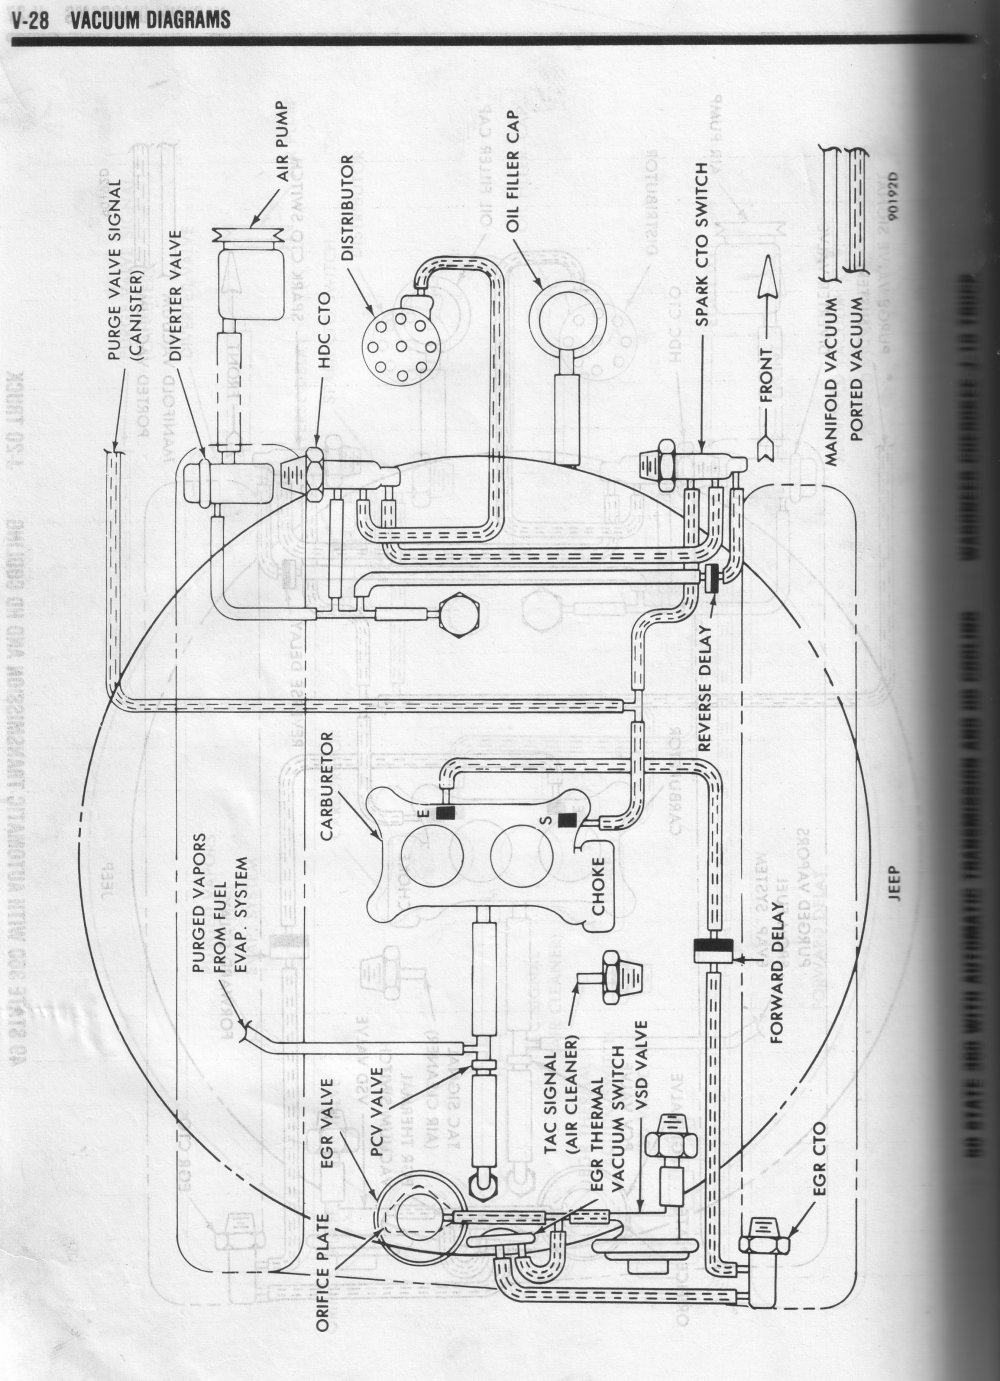 60 state 360 cherokee/wagoneer/j10 automatic tansmission hd cooling � 1980 vacuum  diagrams